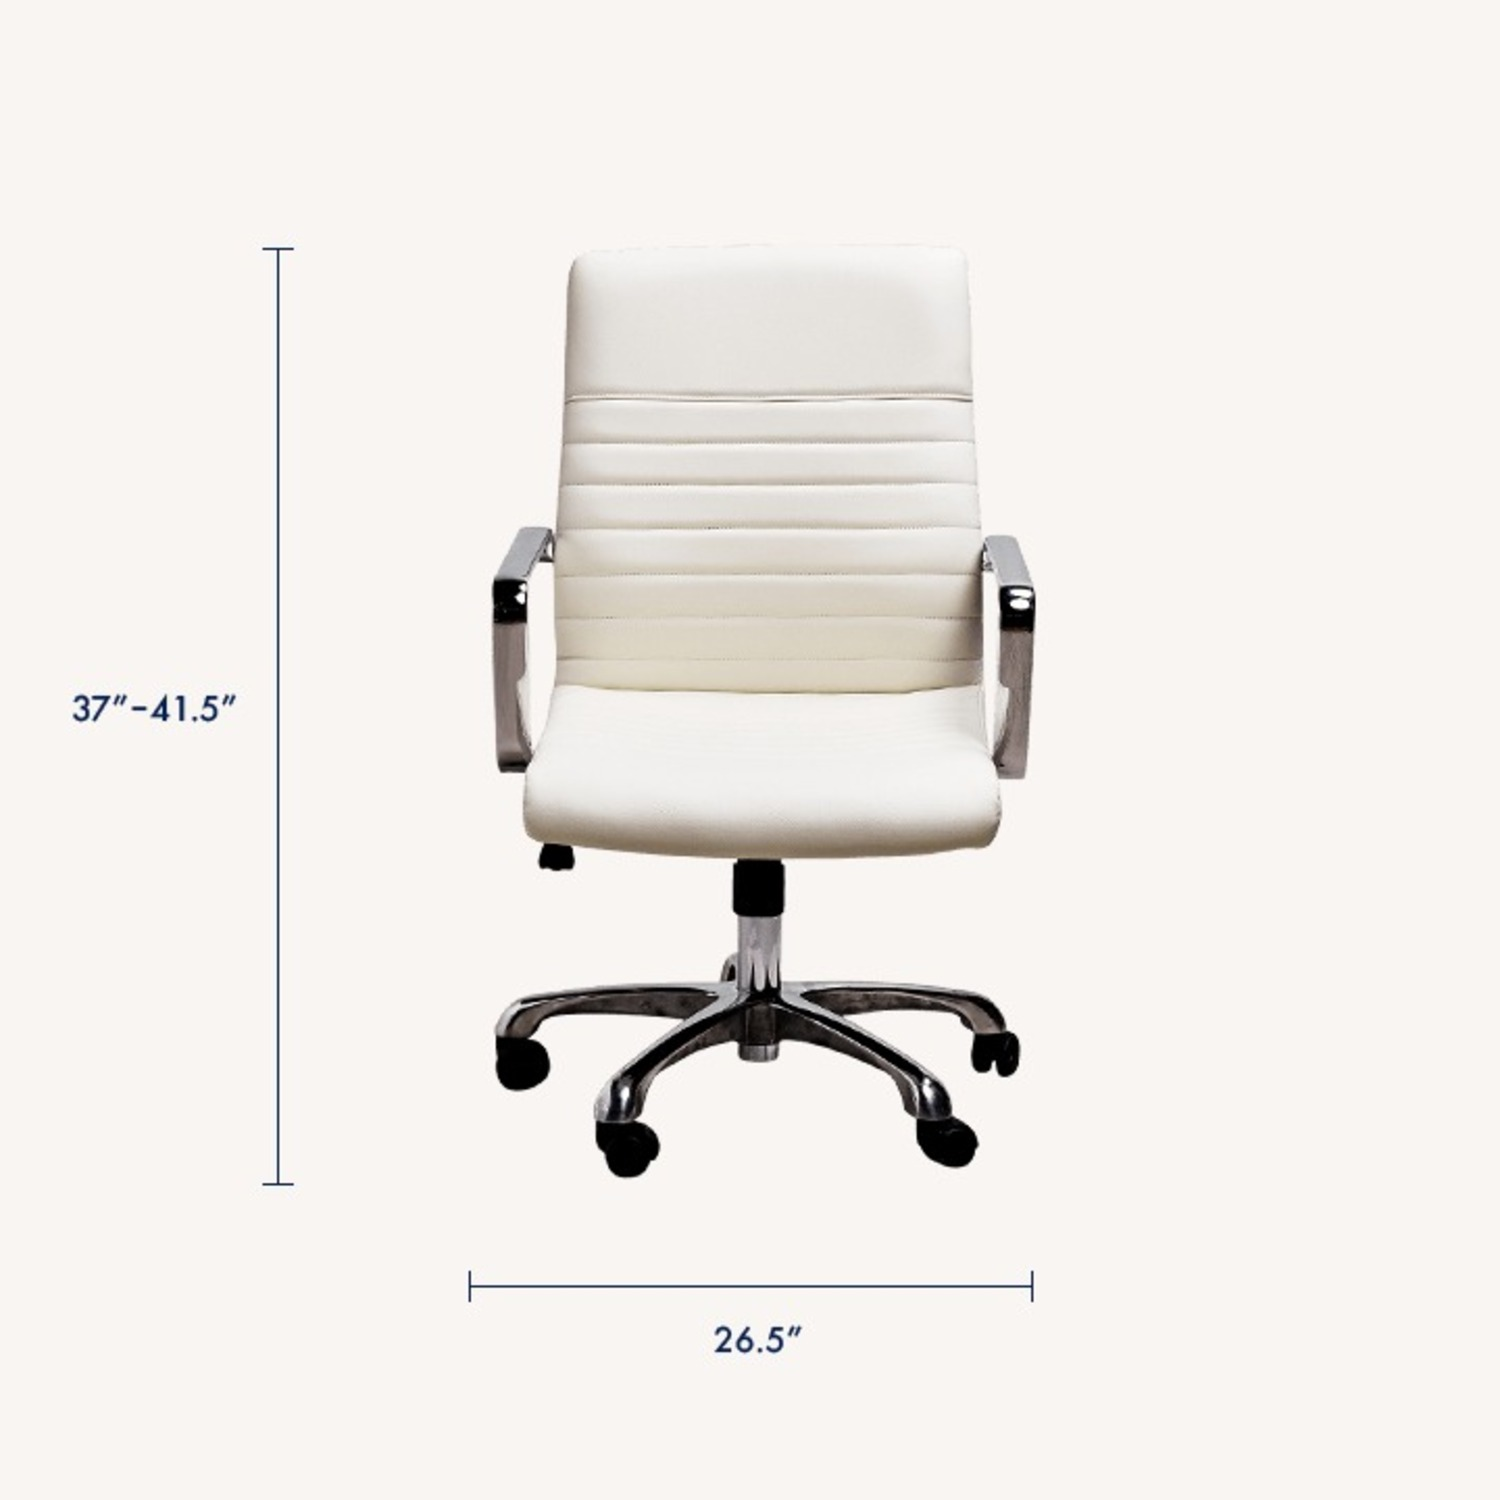 Modway Whimbrel Desk Chair - image-4